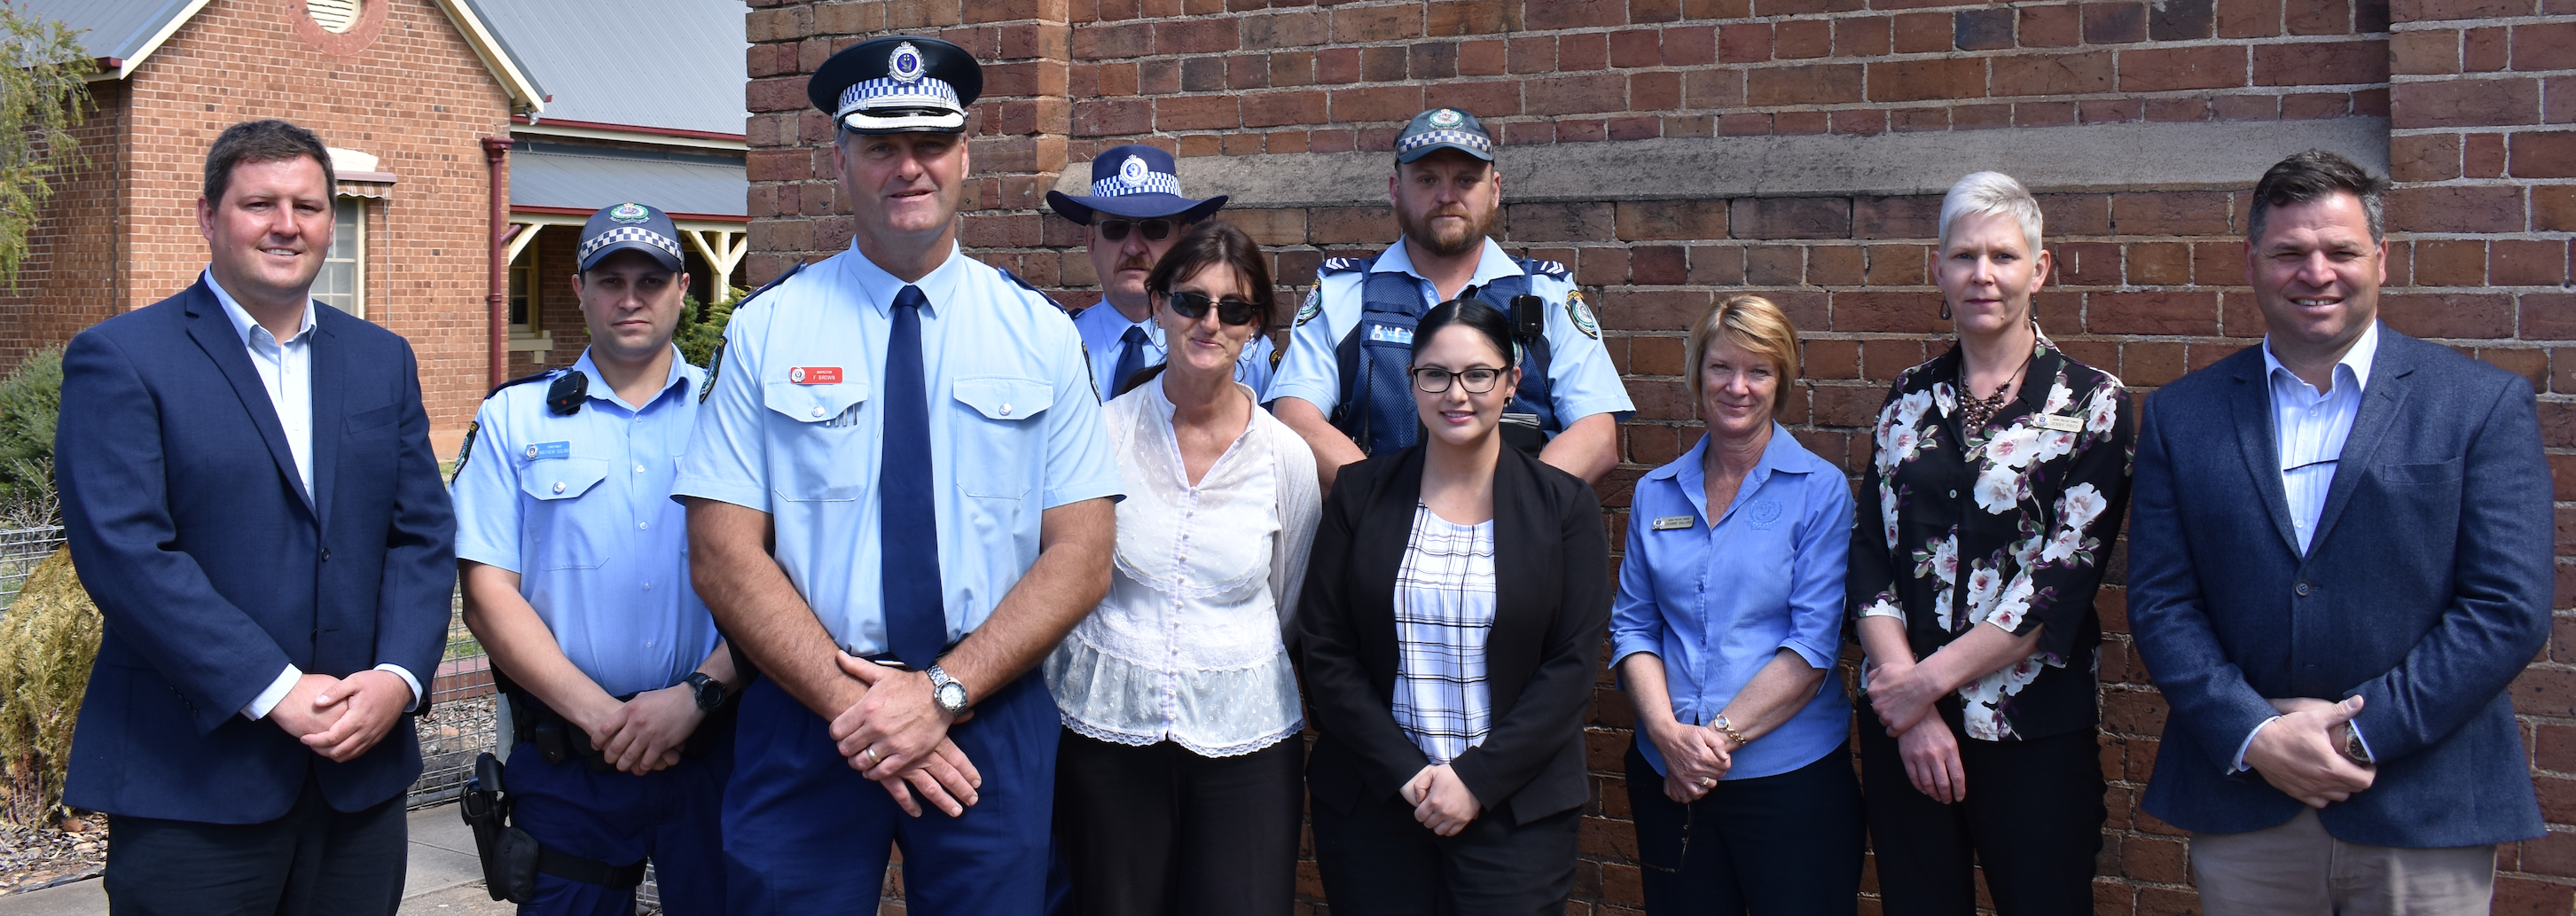 Cootamundra Police Local Area Command